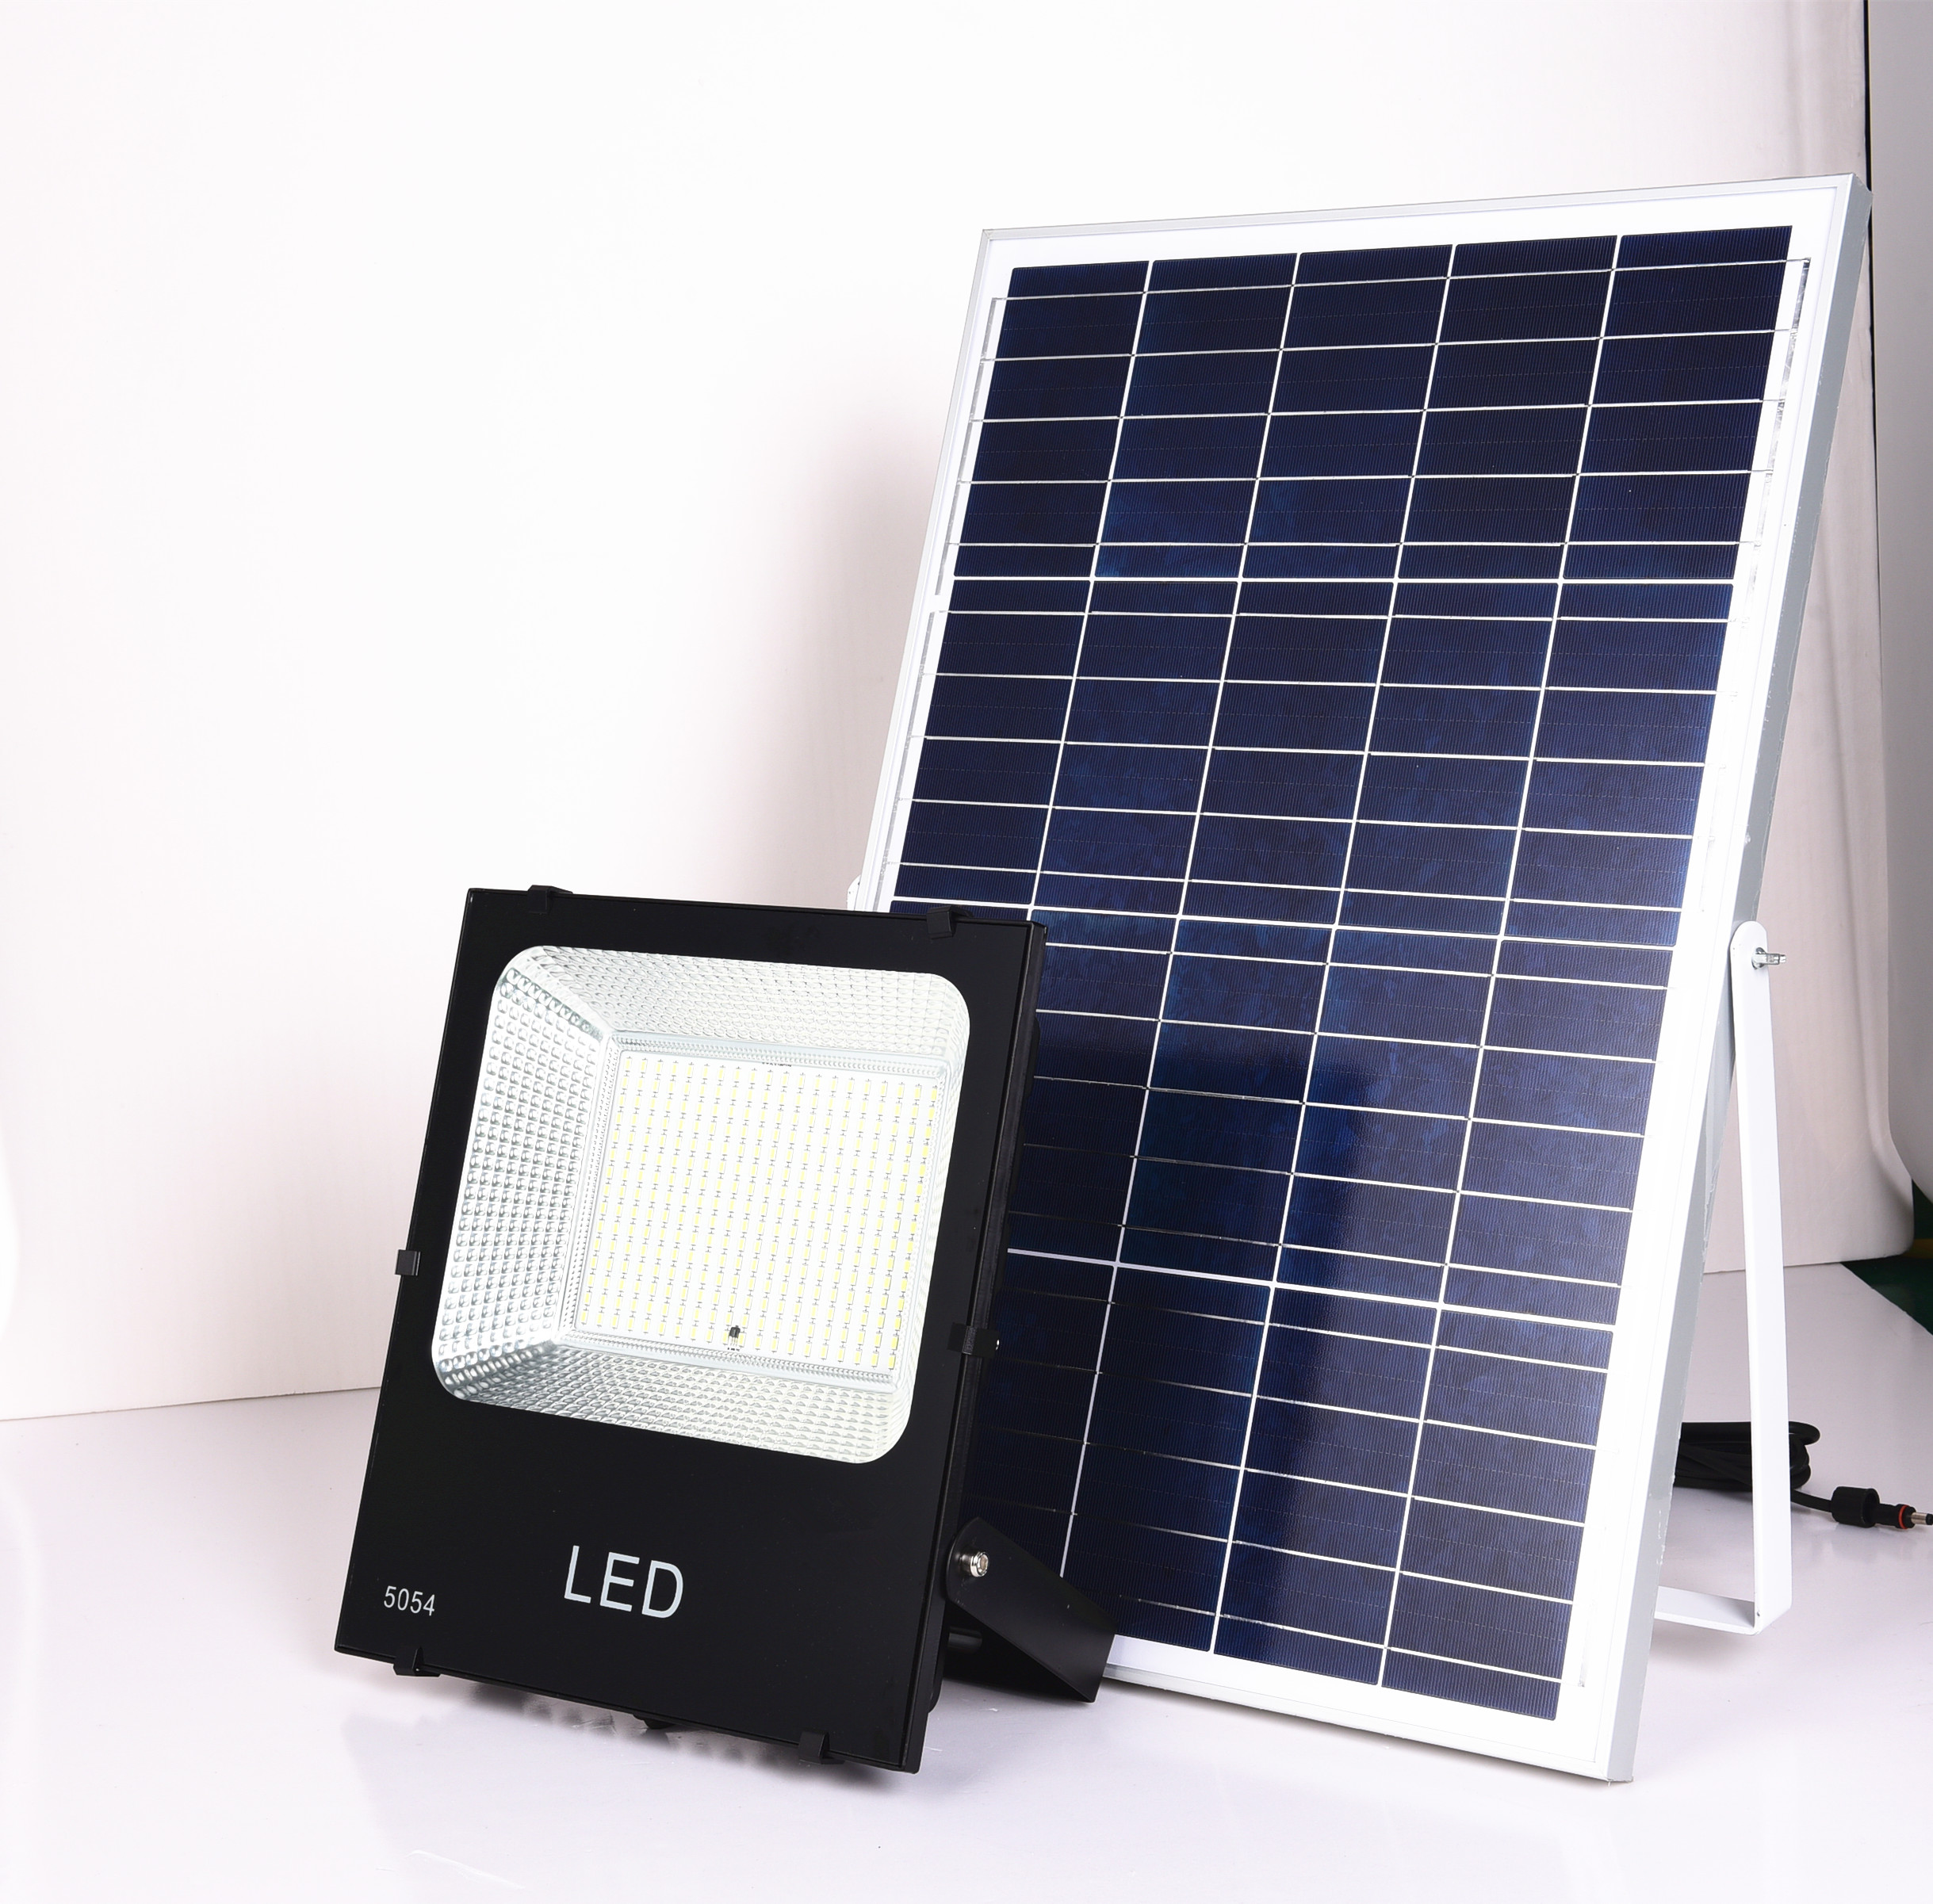 200 W กันน้ำกลางแจ้ง Security House YARD Energy Wireless Garden Solar LED Flood LIGHT